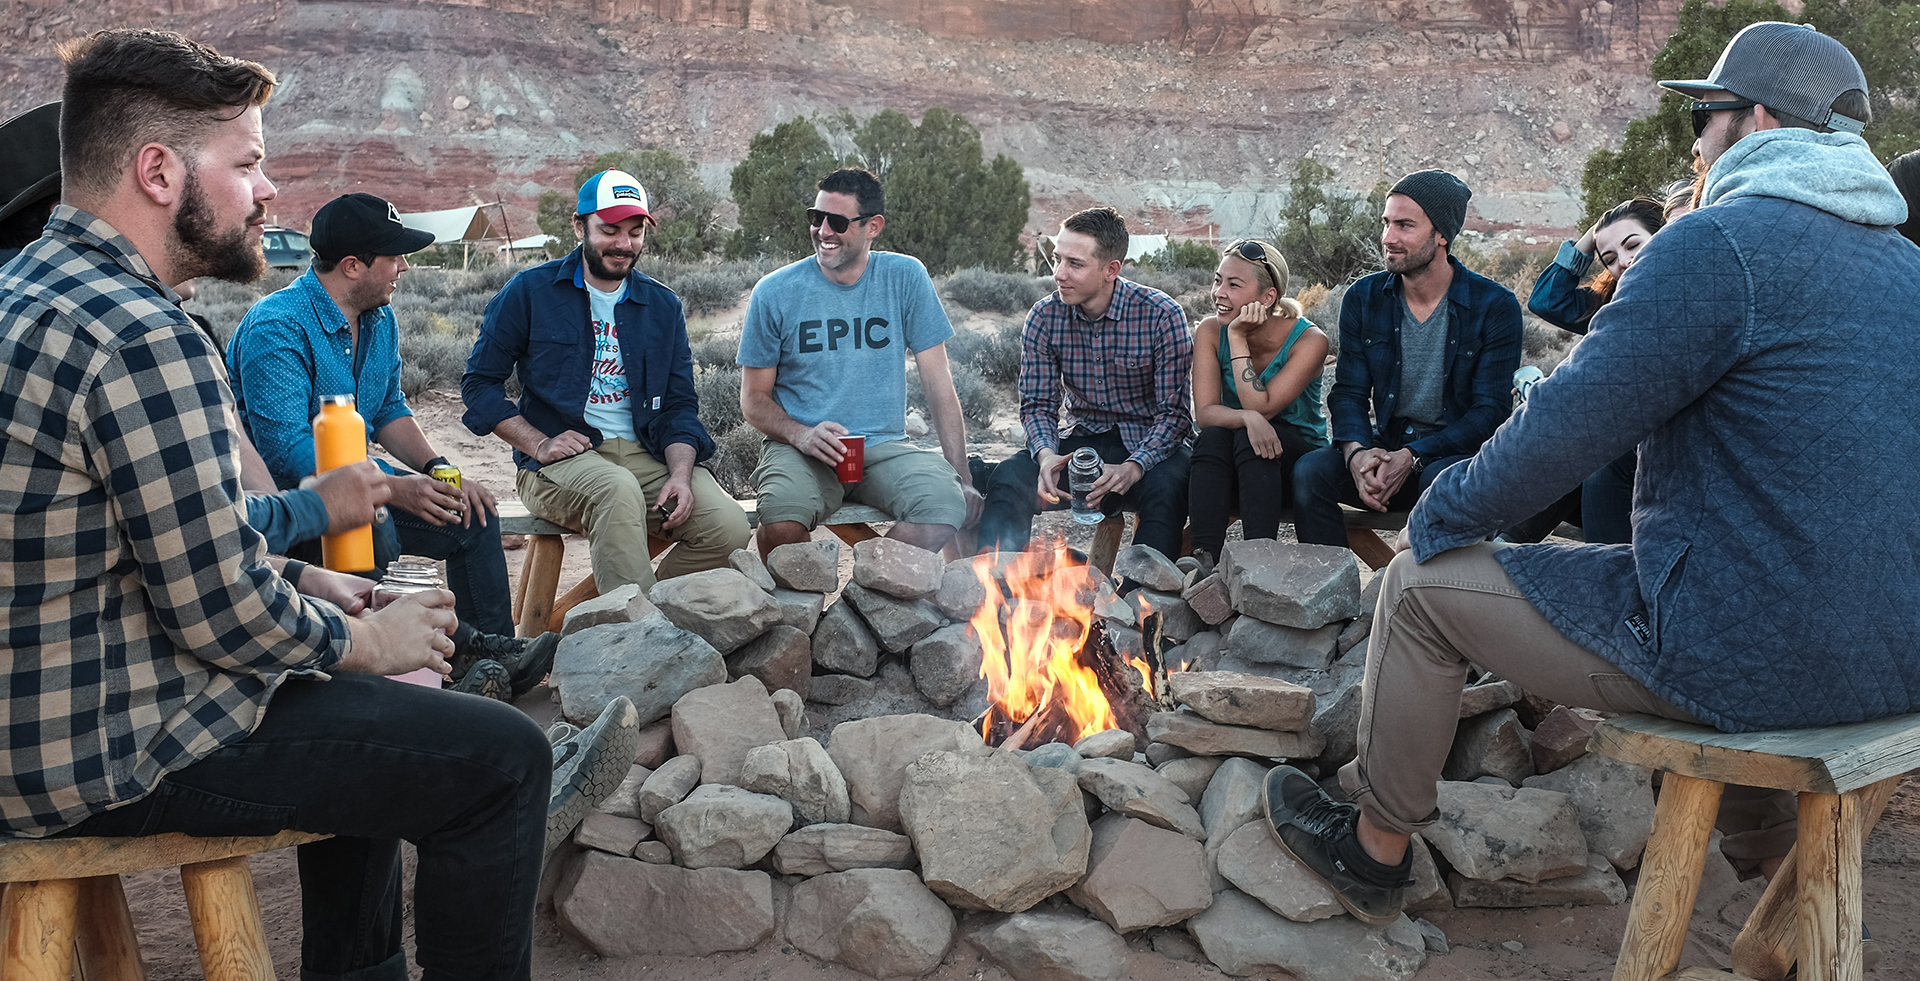 Group of people around a campfire socializing